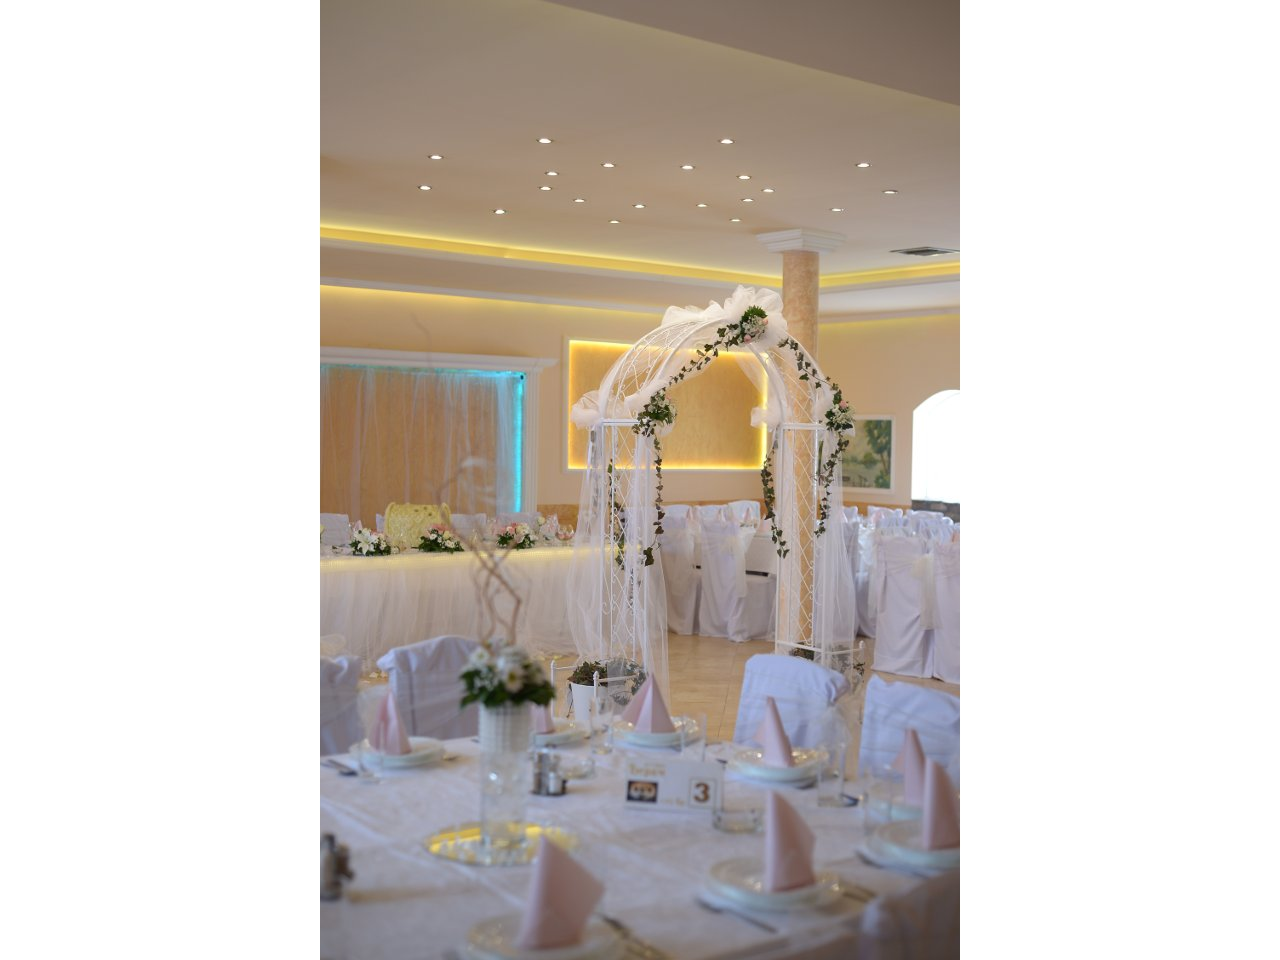 RESTAURANT DJERAM Restaurants for weddings Ruma - Photo 9